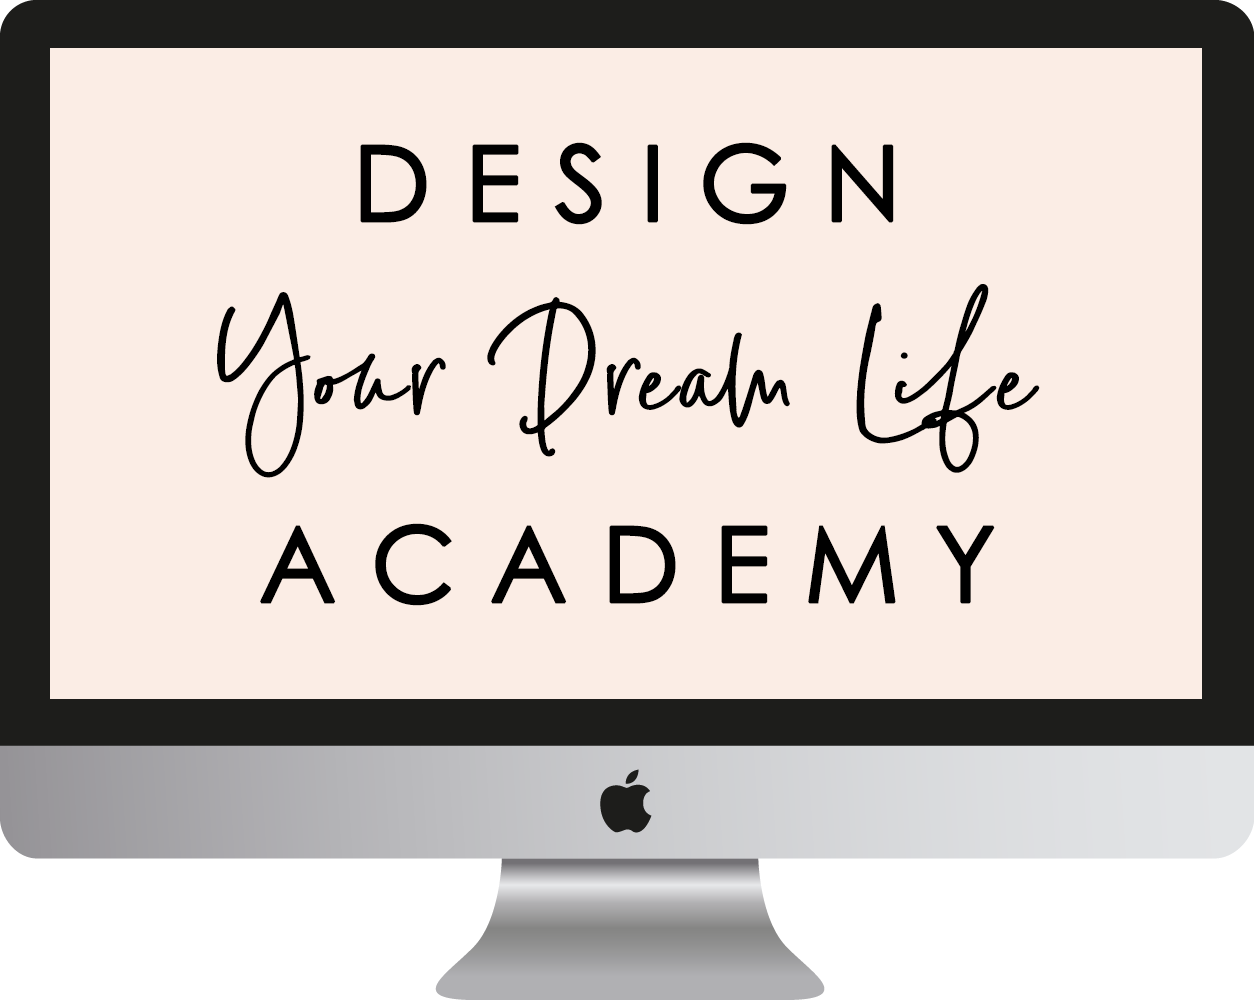 Design Your Dream Life Academy